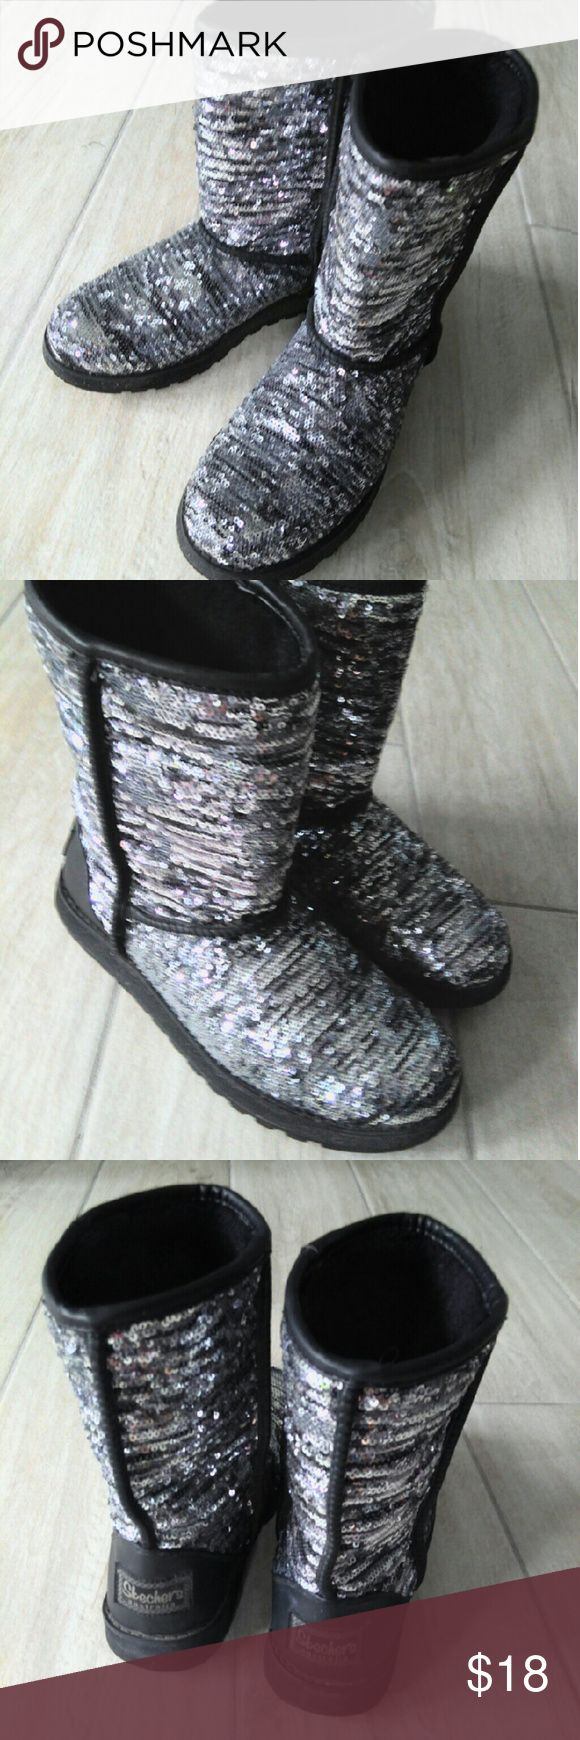 EUC Skechers winter boots Very comfortable, all sequins in place.  Great quality boots that will last.  Would fit both 8 & 8.5  Smoke free, quick shipping. Skechers Shoes Winter & Rain Boots